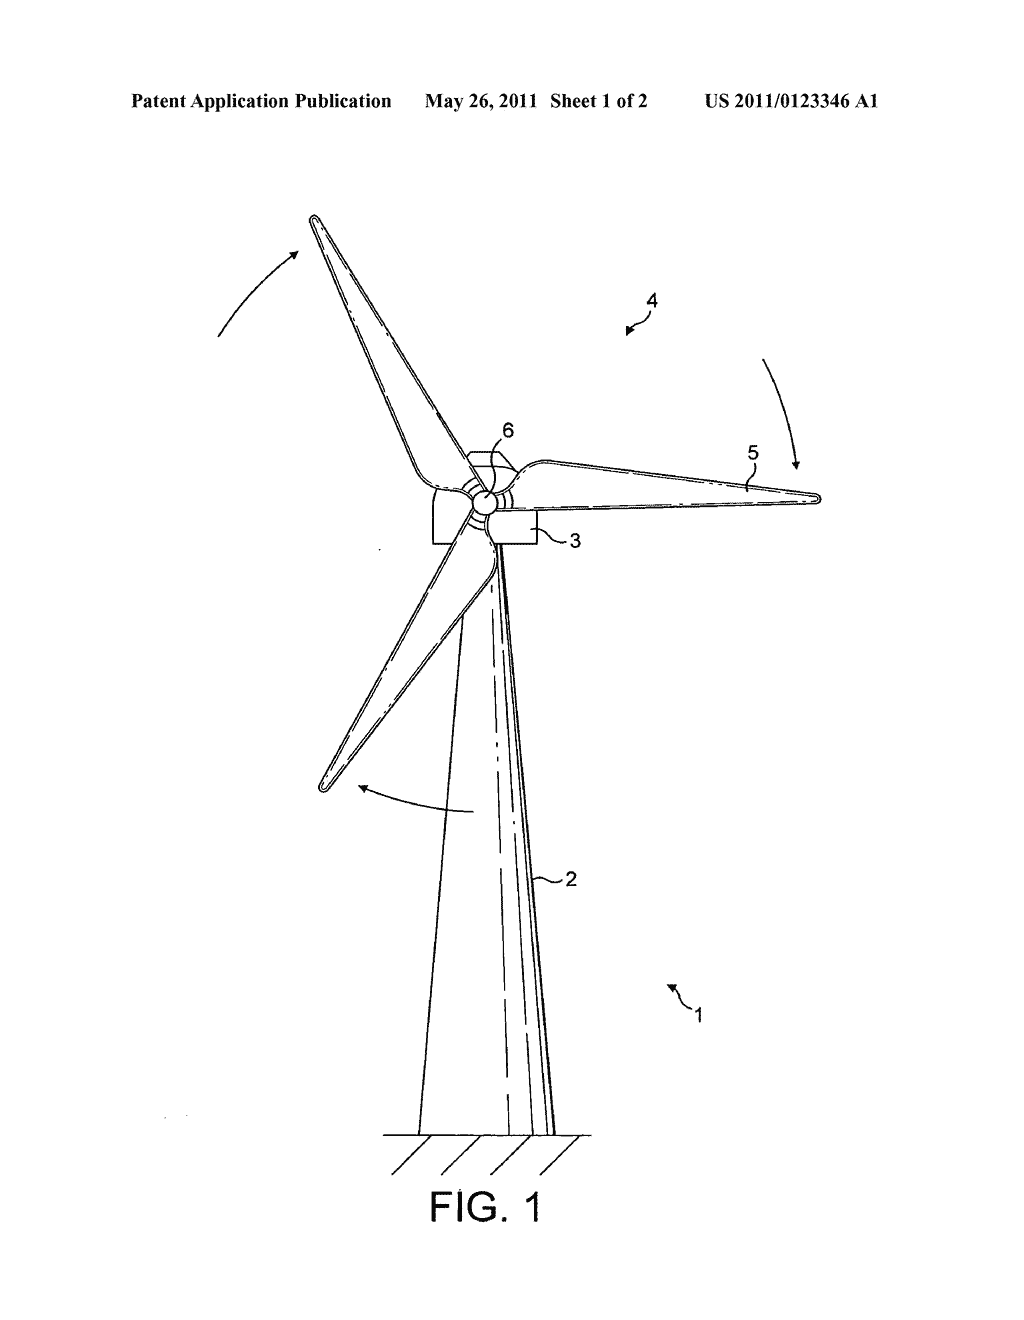 Wiring And Diagram: Diagram Of Windmill